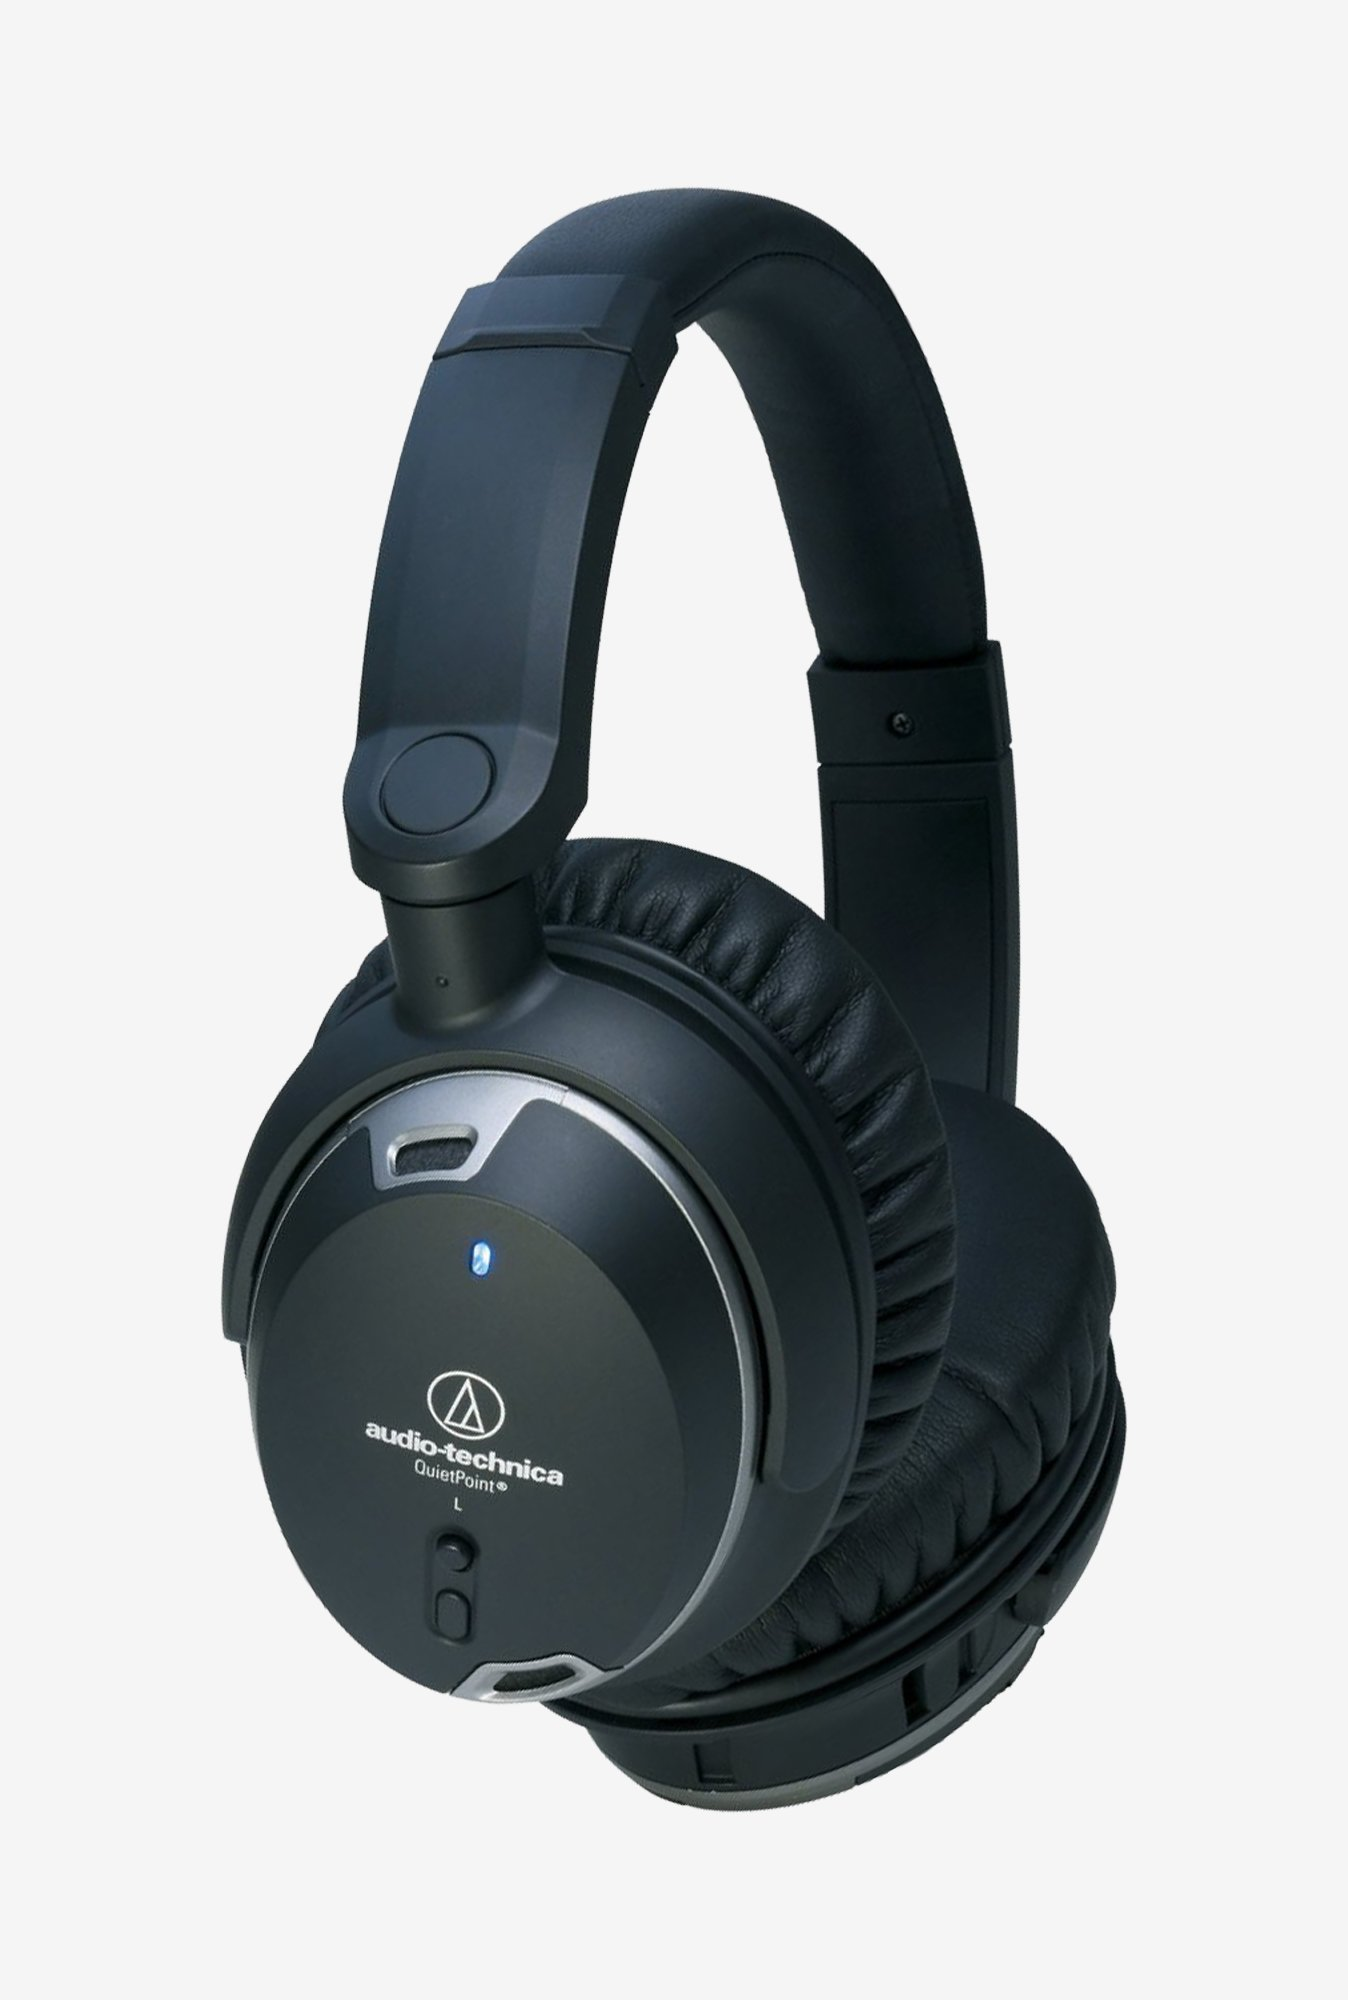 Audio-Technica ATH-ANC9 Headphones Black